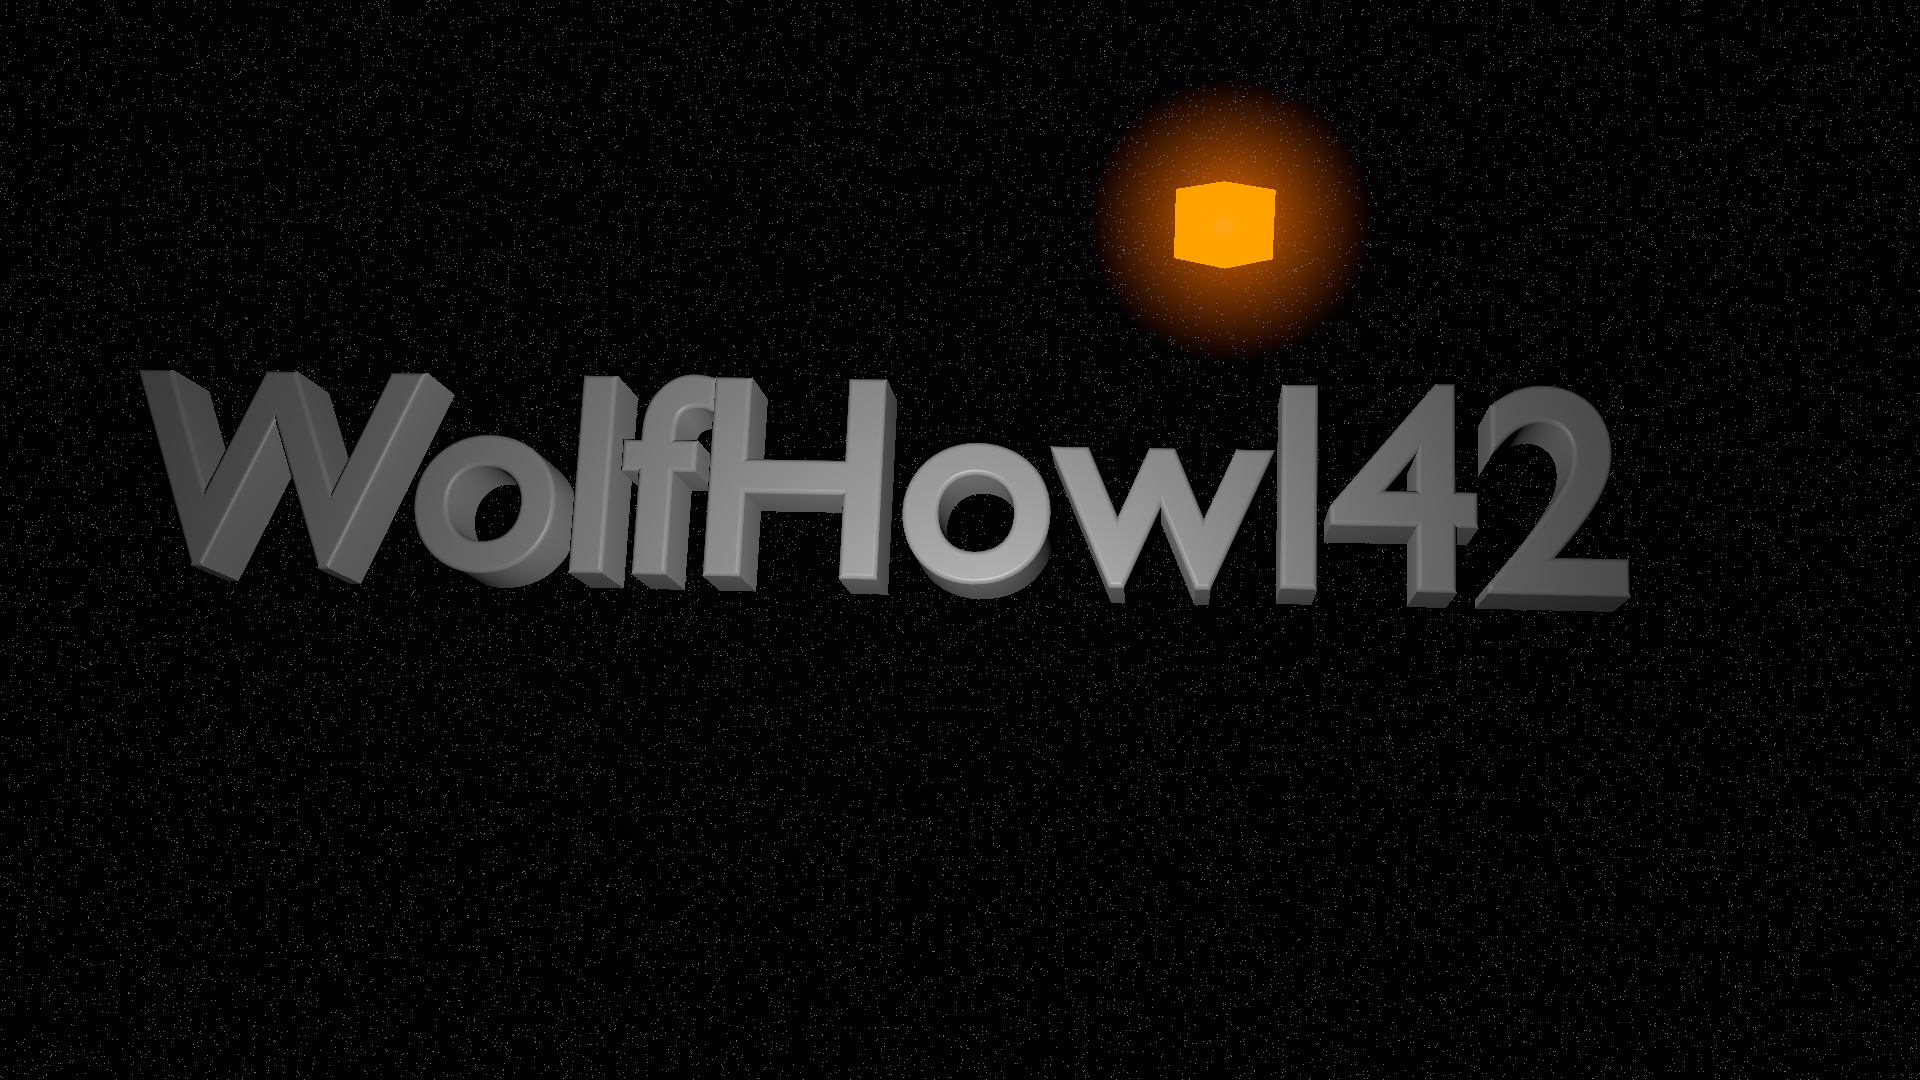 wolfhowl42.png